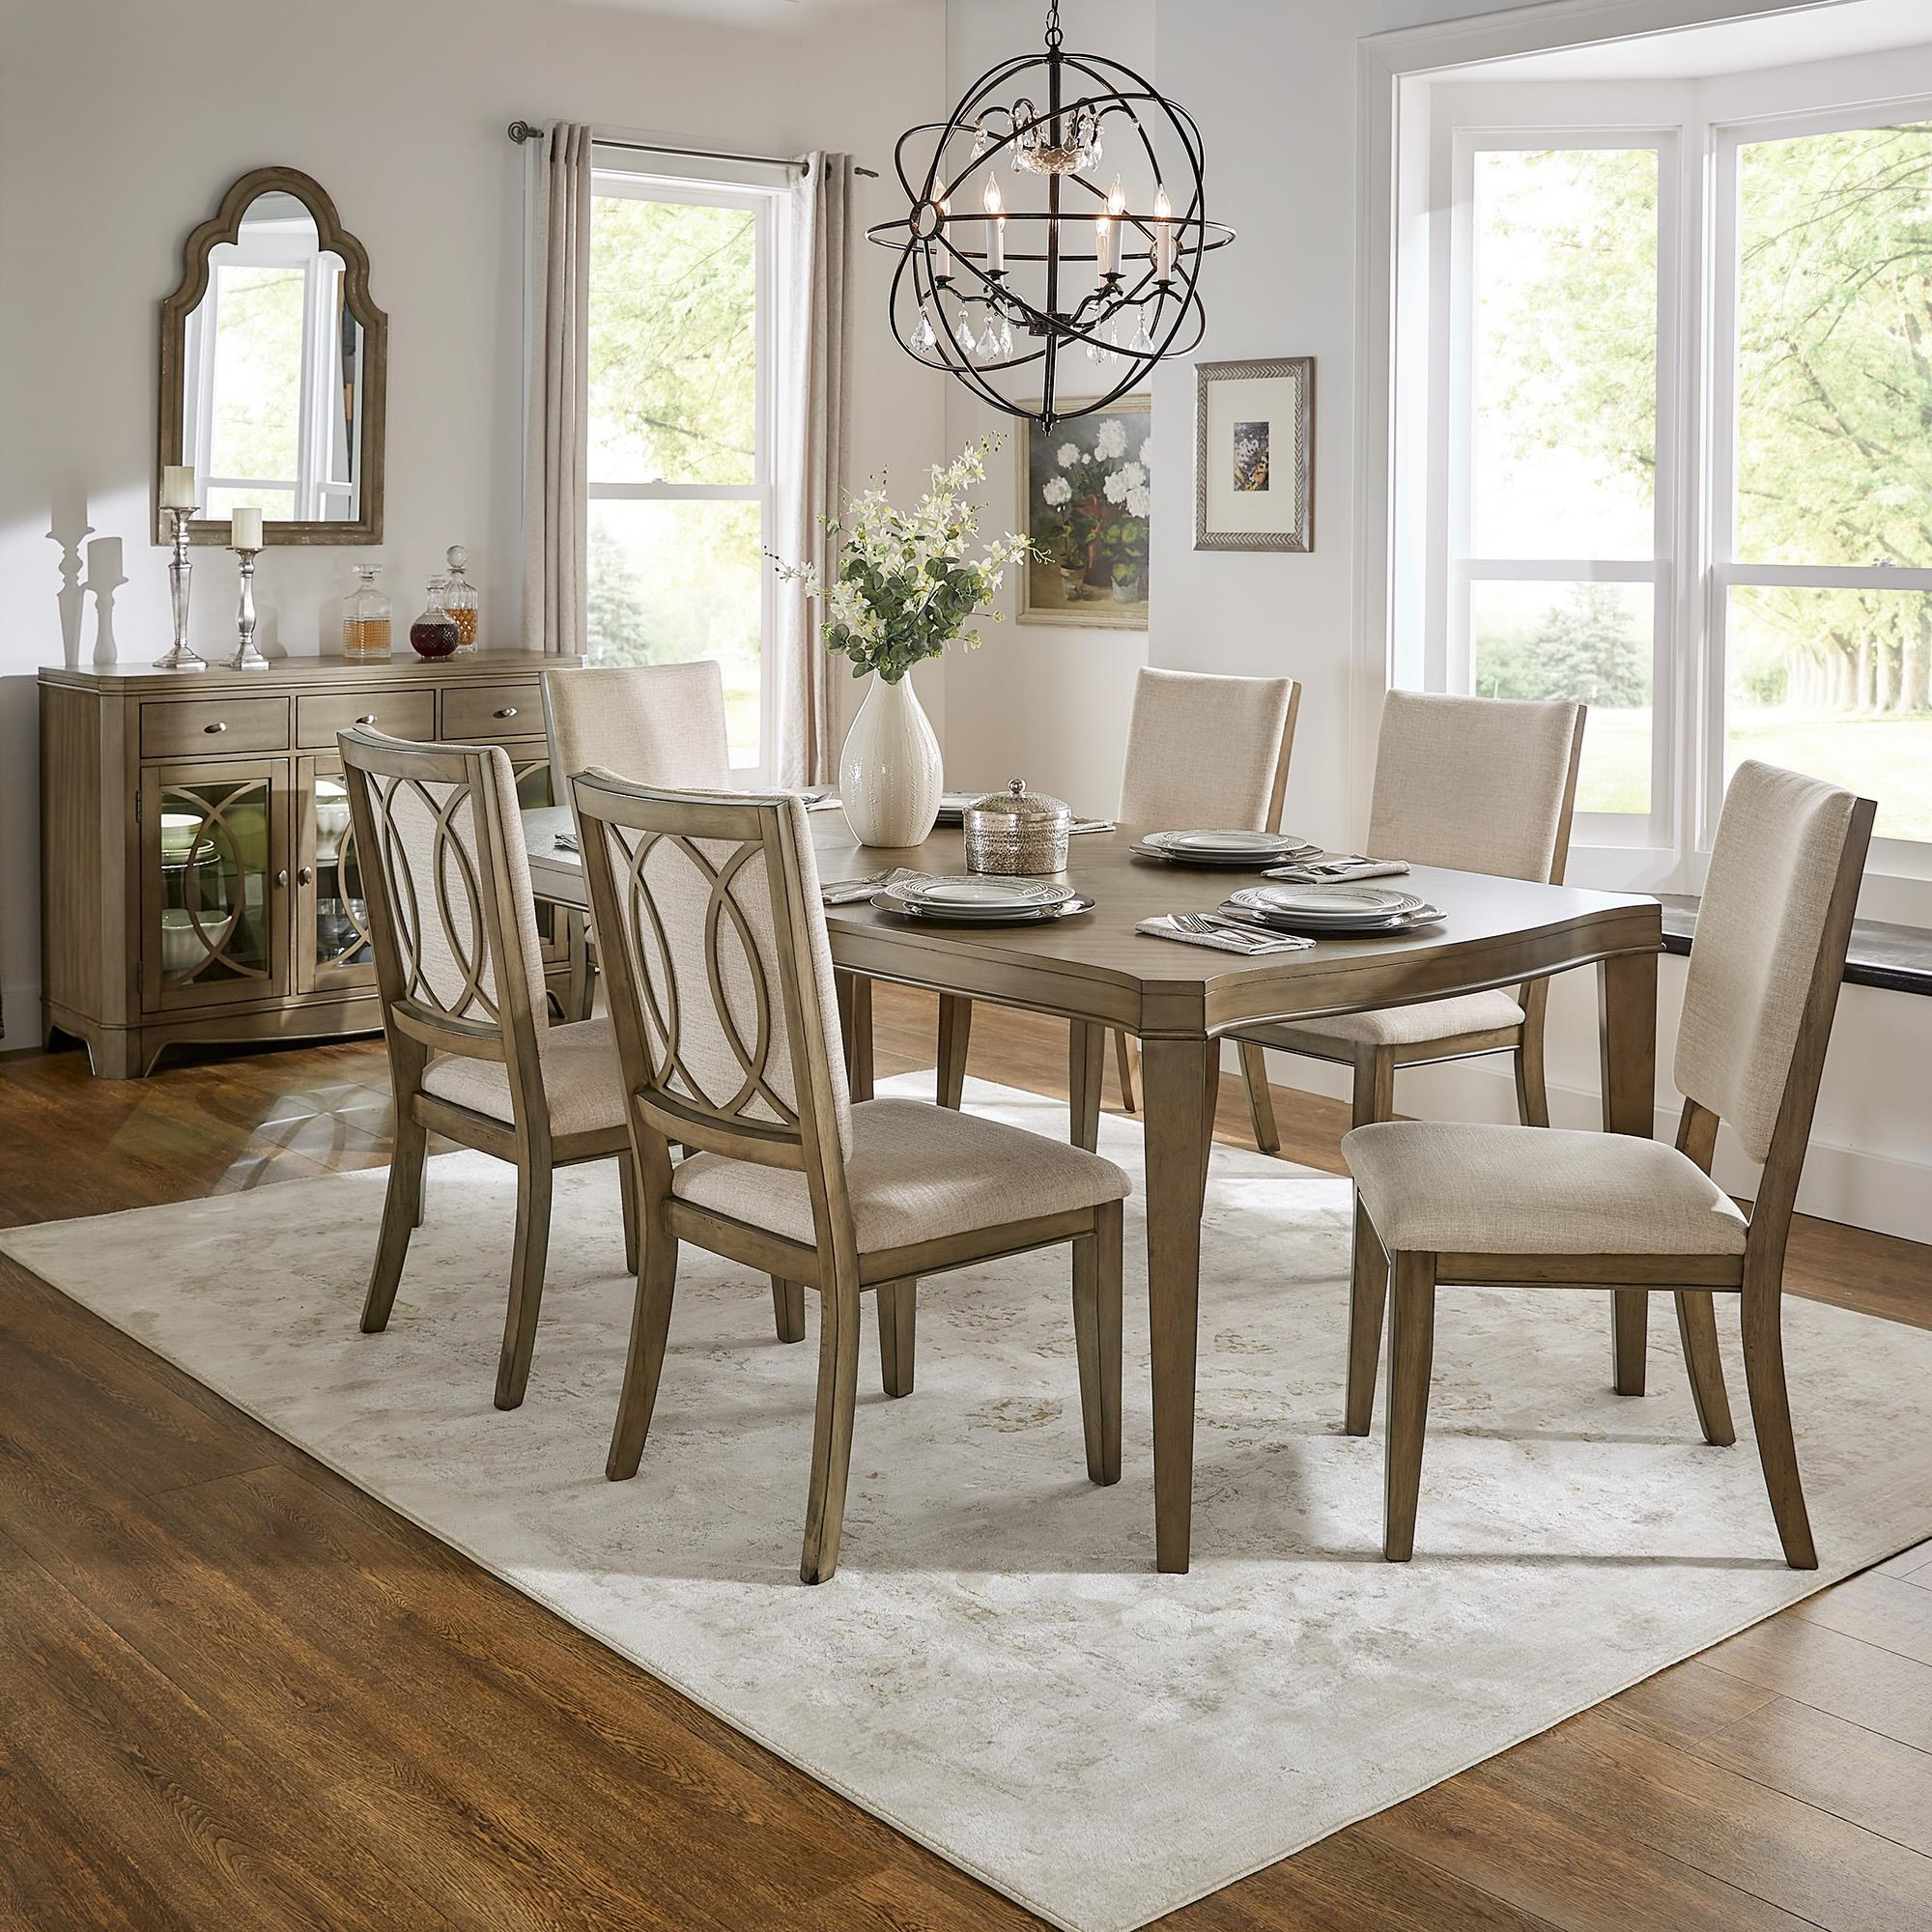 Price 5 Piece Dining Set by Homelegance at Darvin Furniture